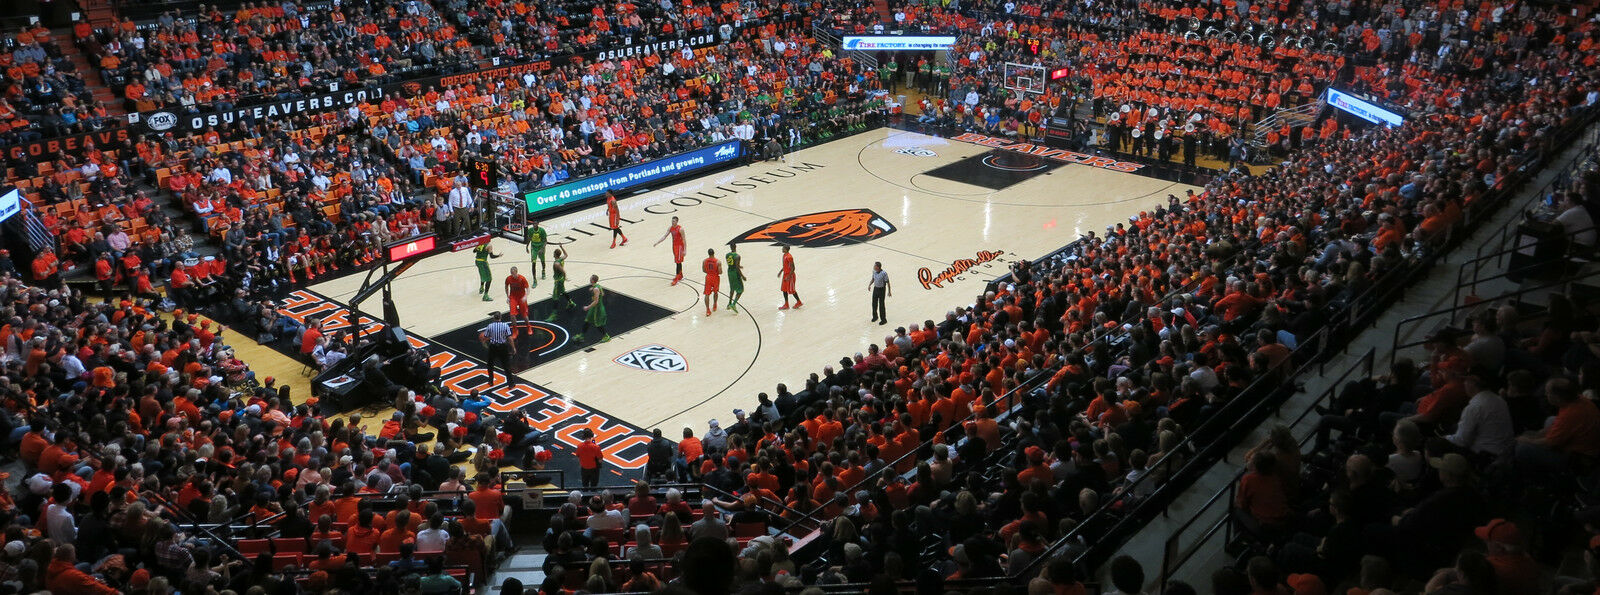 Washington Huskies at Oregon State Beavers Basketball